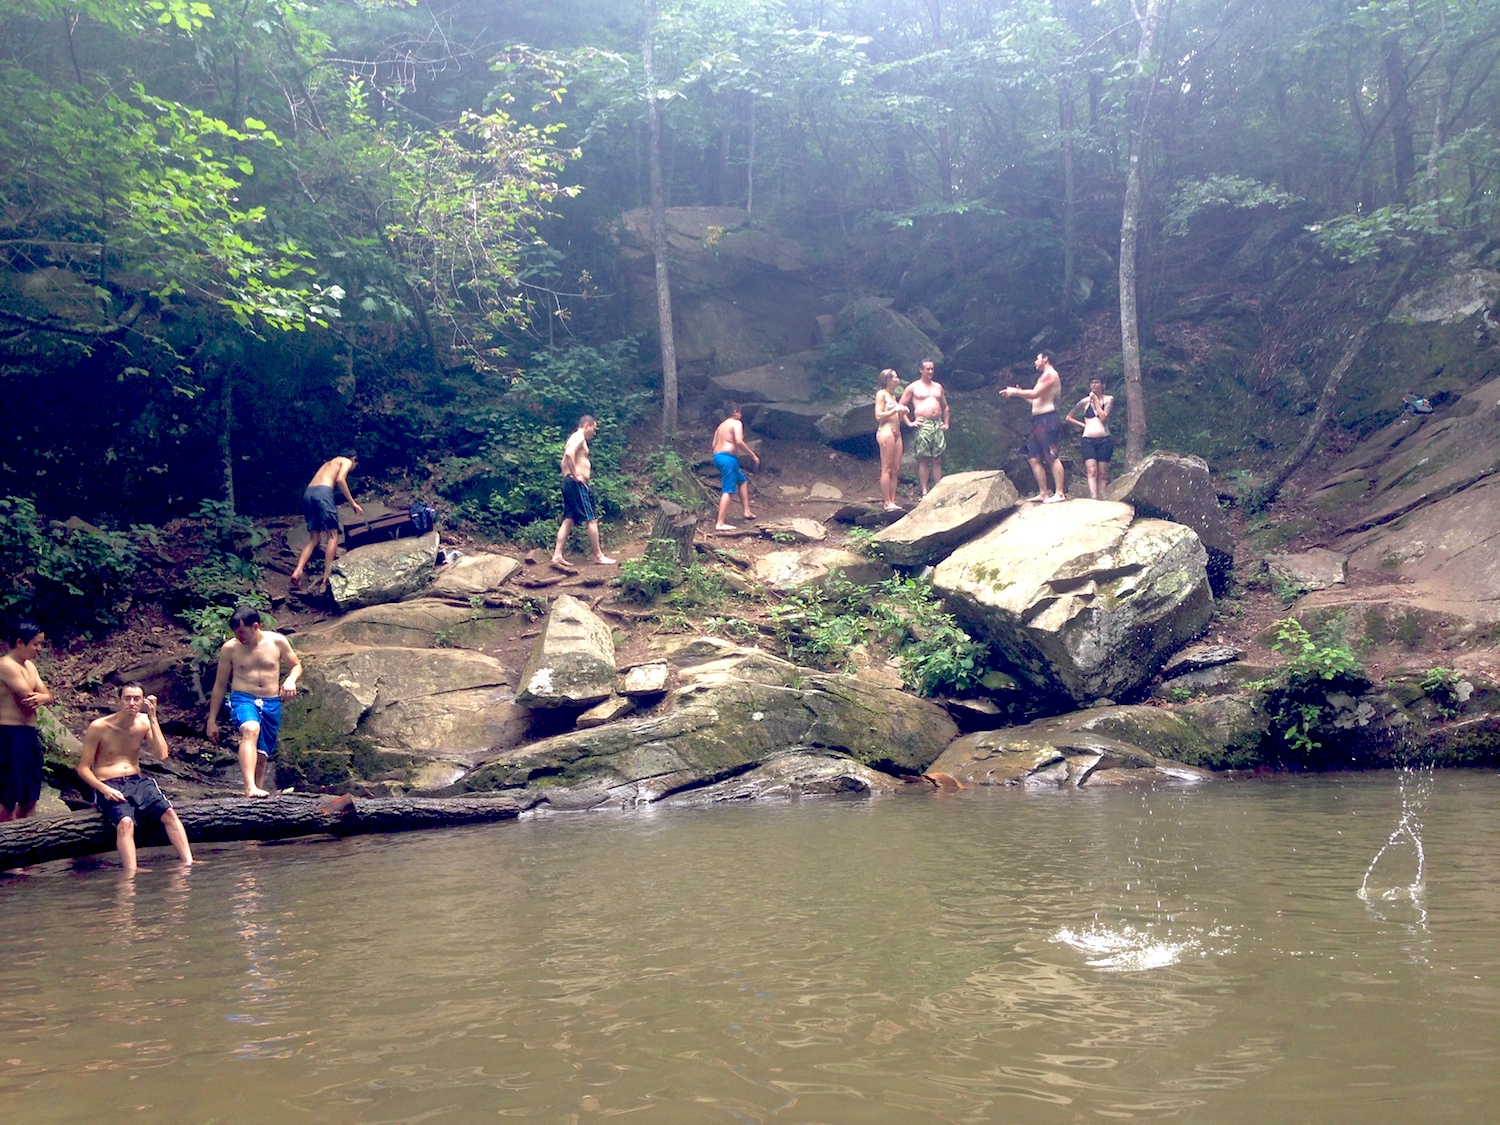 Strangers quickly become compatriots at the swimming hole